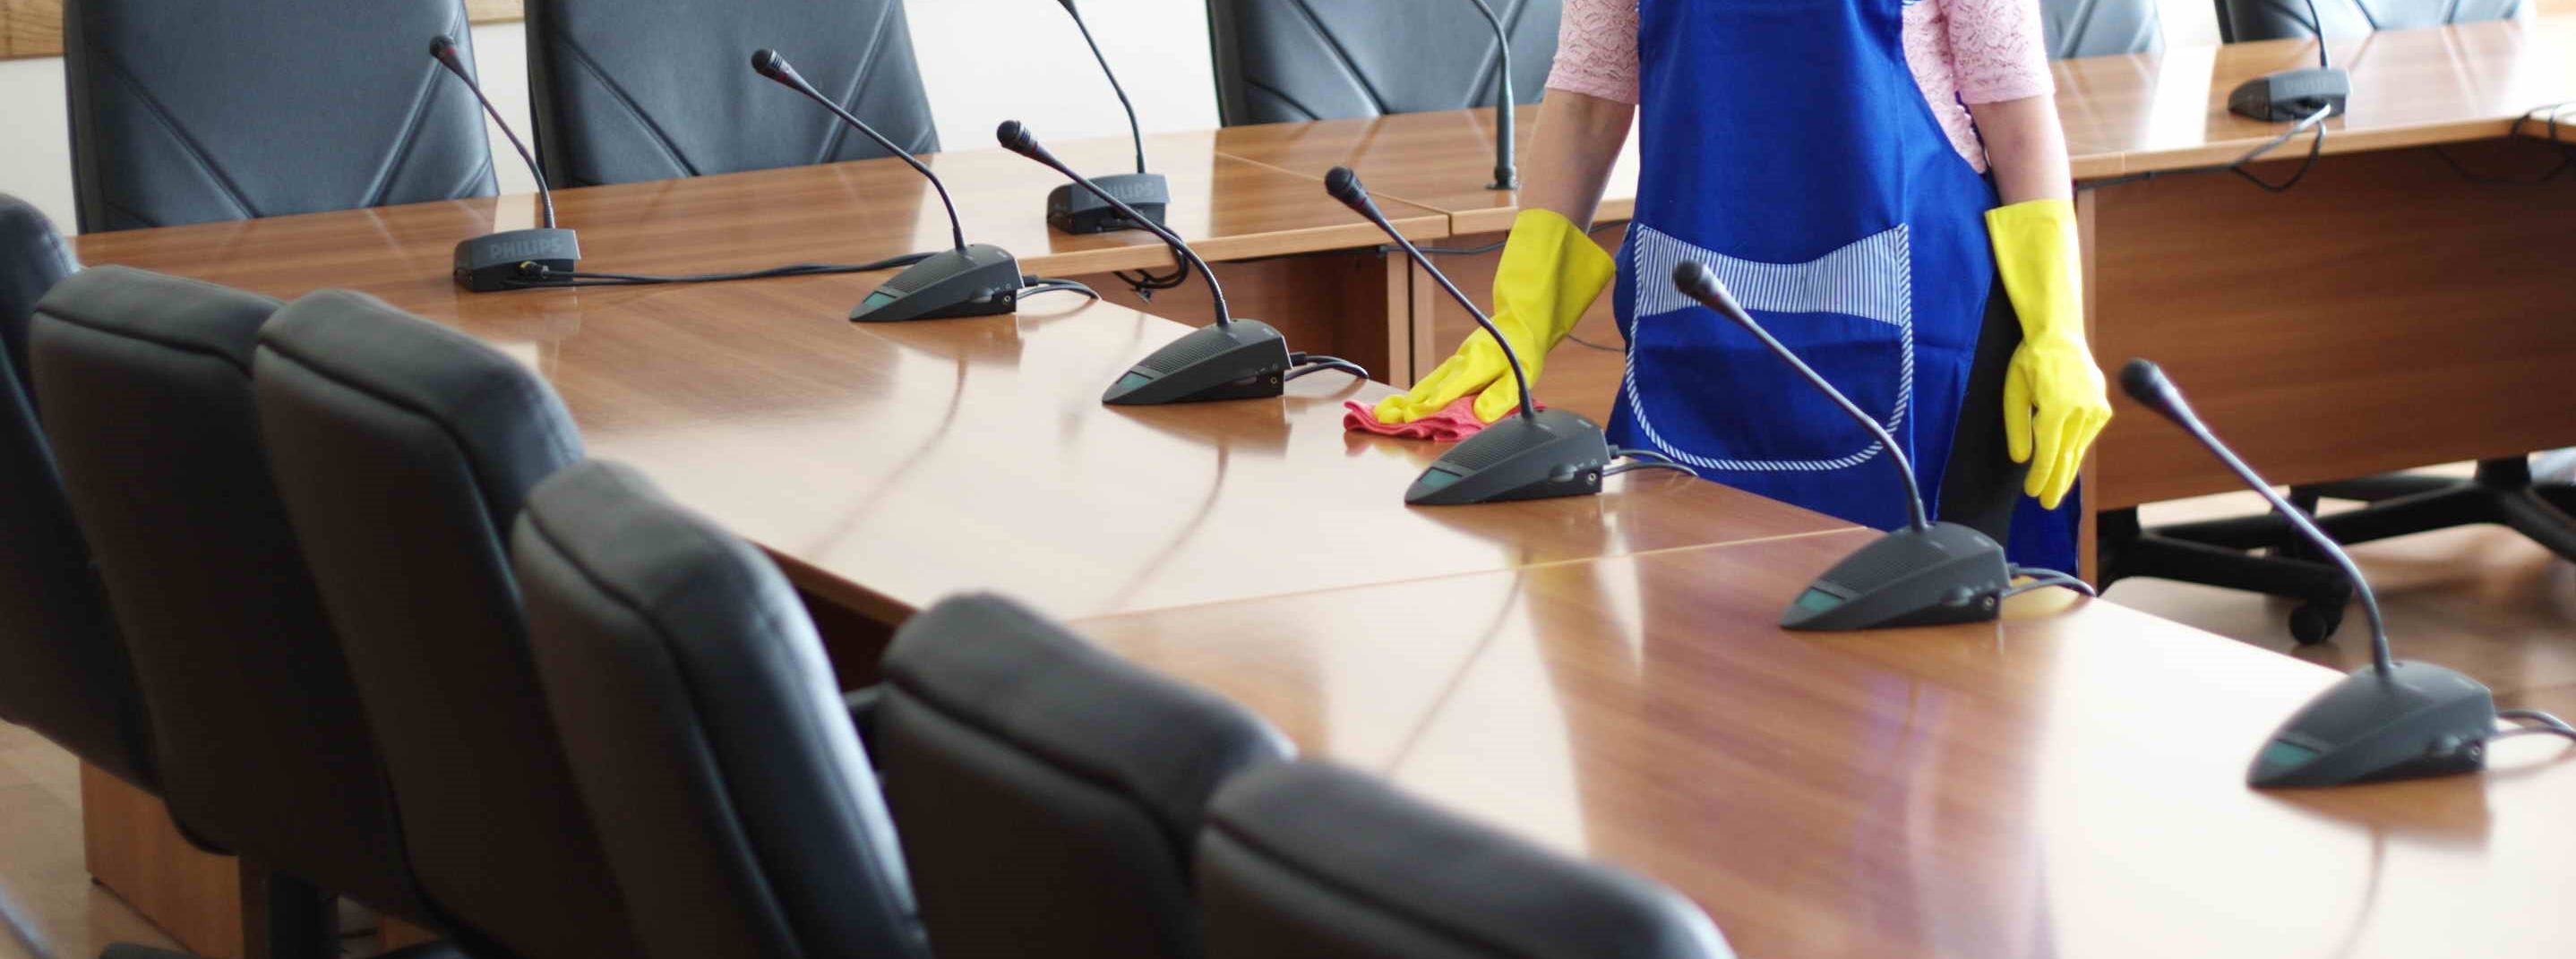 commercial cleaning services mount prospect